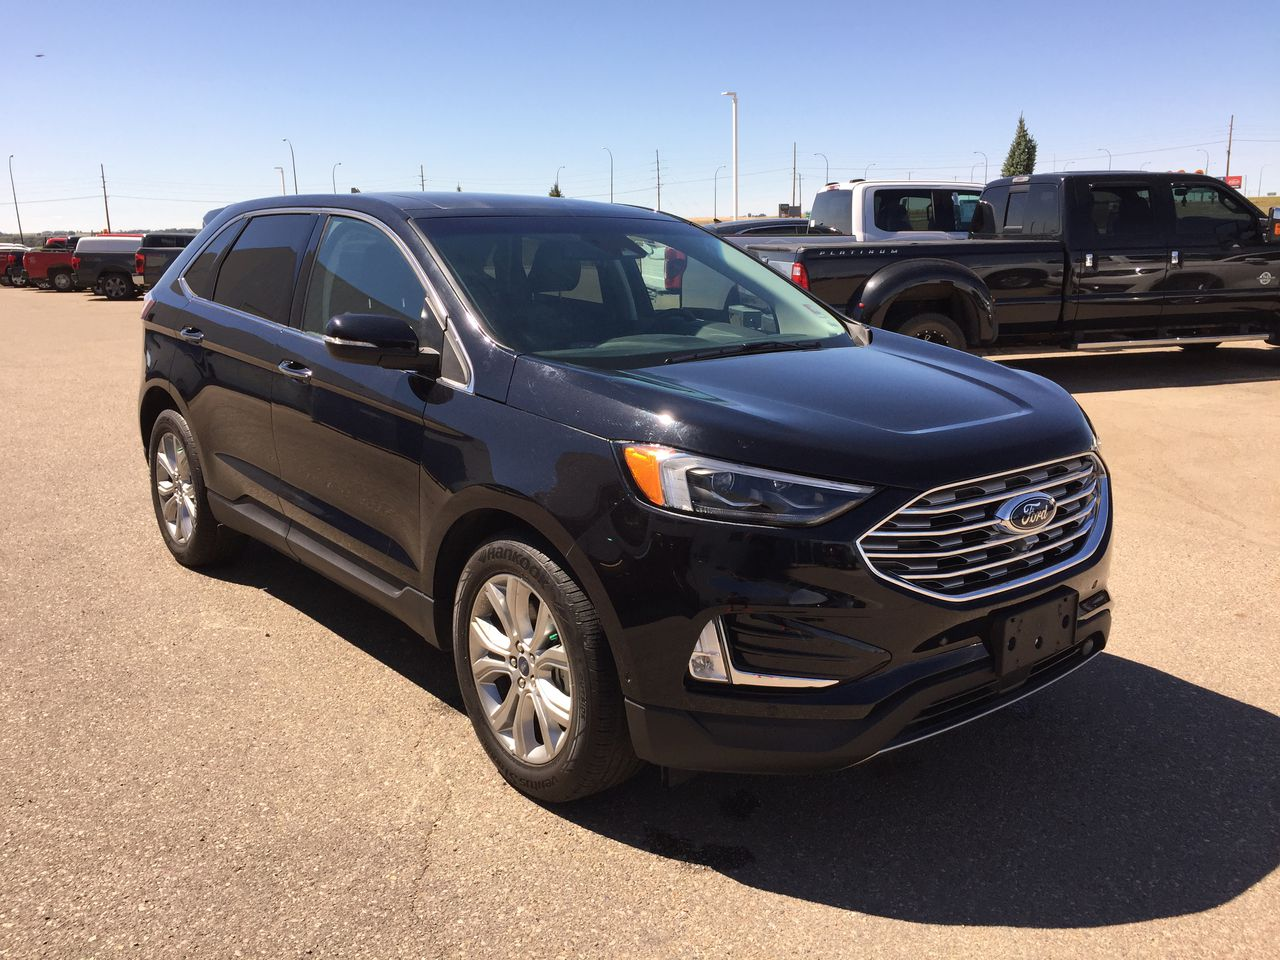 2019 Ford Edge AWD Titanium (U3763) Main Image